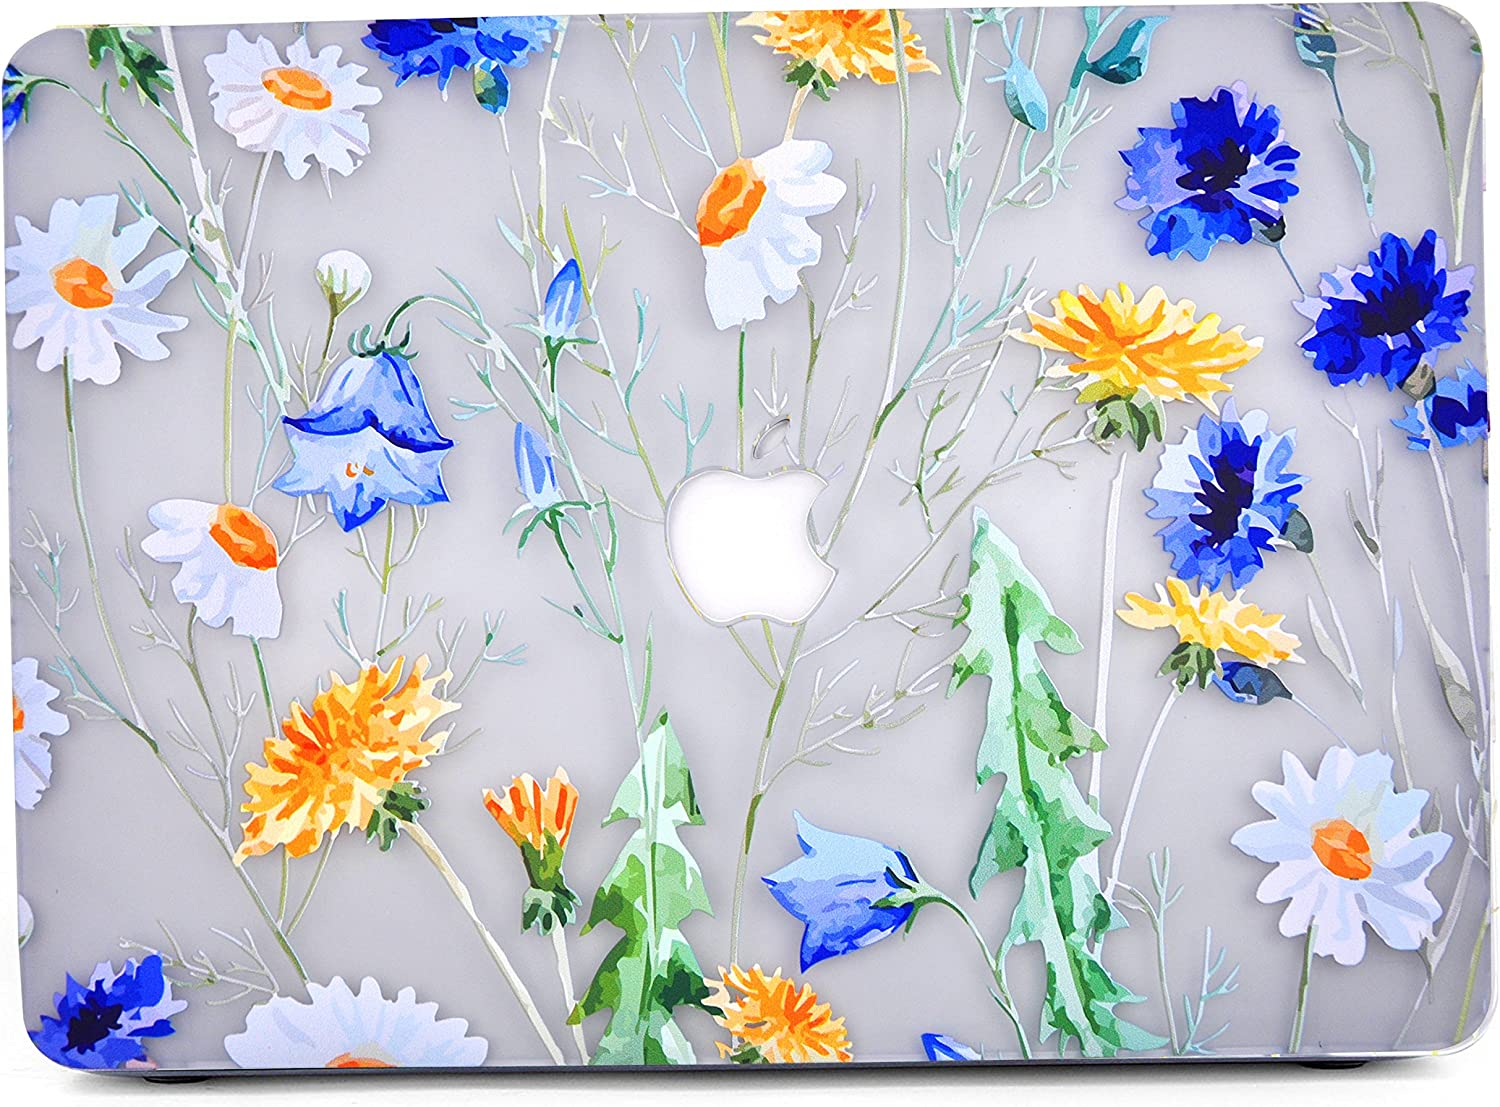 """Case for MacBook Air 11, L2W Floral Design Pattern Glossy Matte Clear See-Through Case Cover Compatible with MacBook Air 11"""" (A1370 and A1465) - See Through Floral Pattern W"""